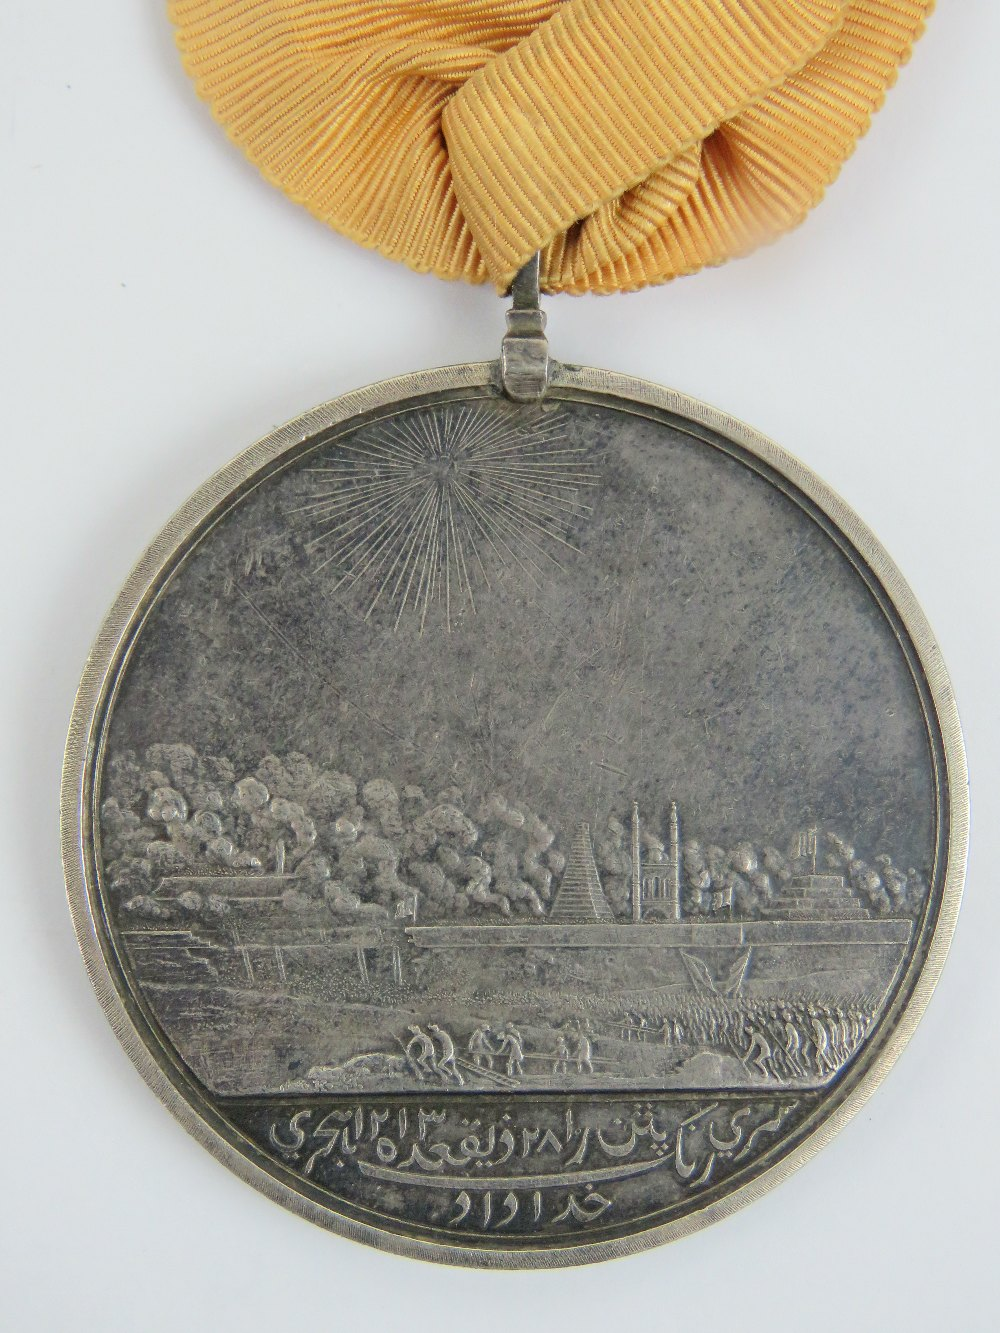 Lot 88 - An Honourable East India Company medal for Seringapatam 1799, with ribbon, silver, 48mm, Soho Mint.